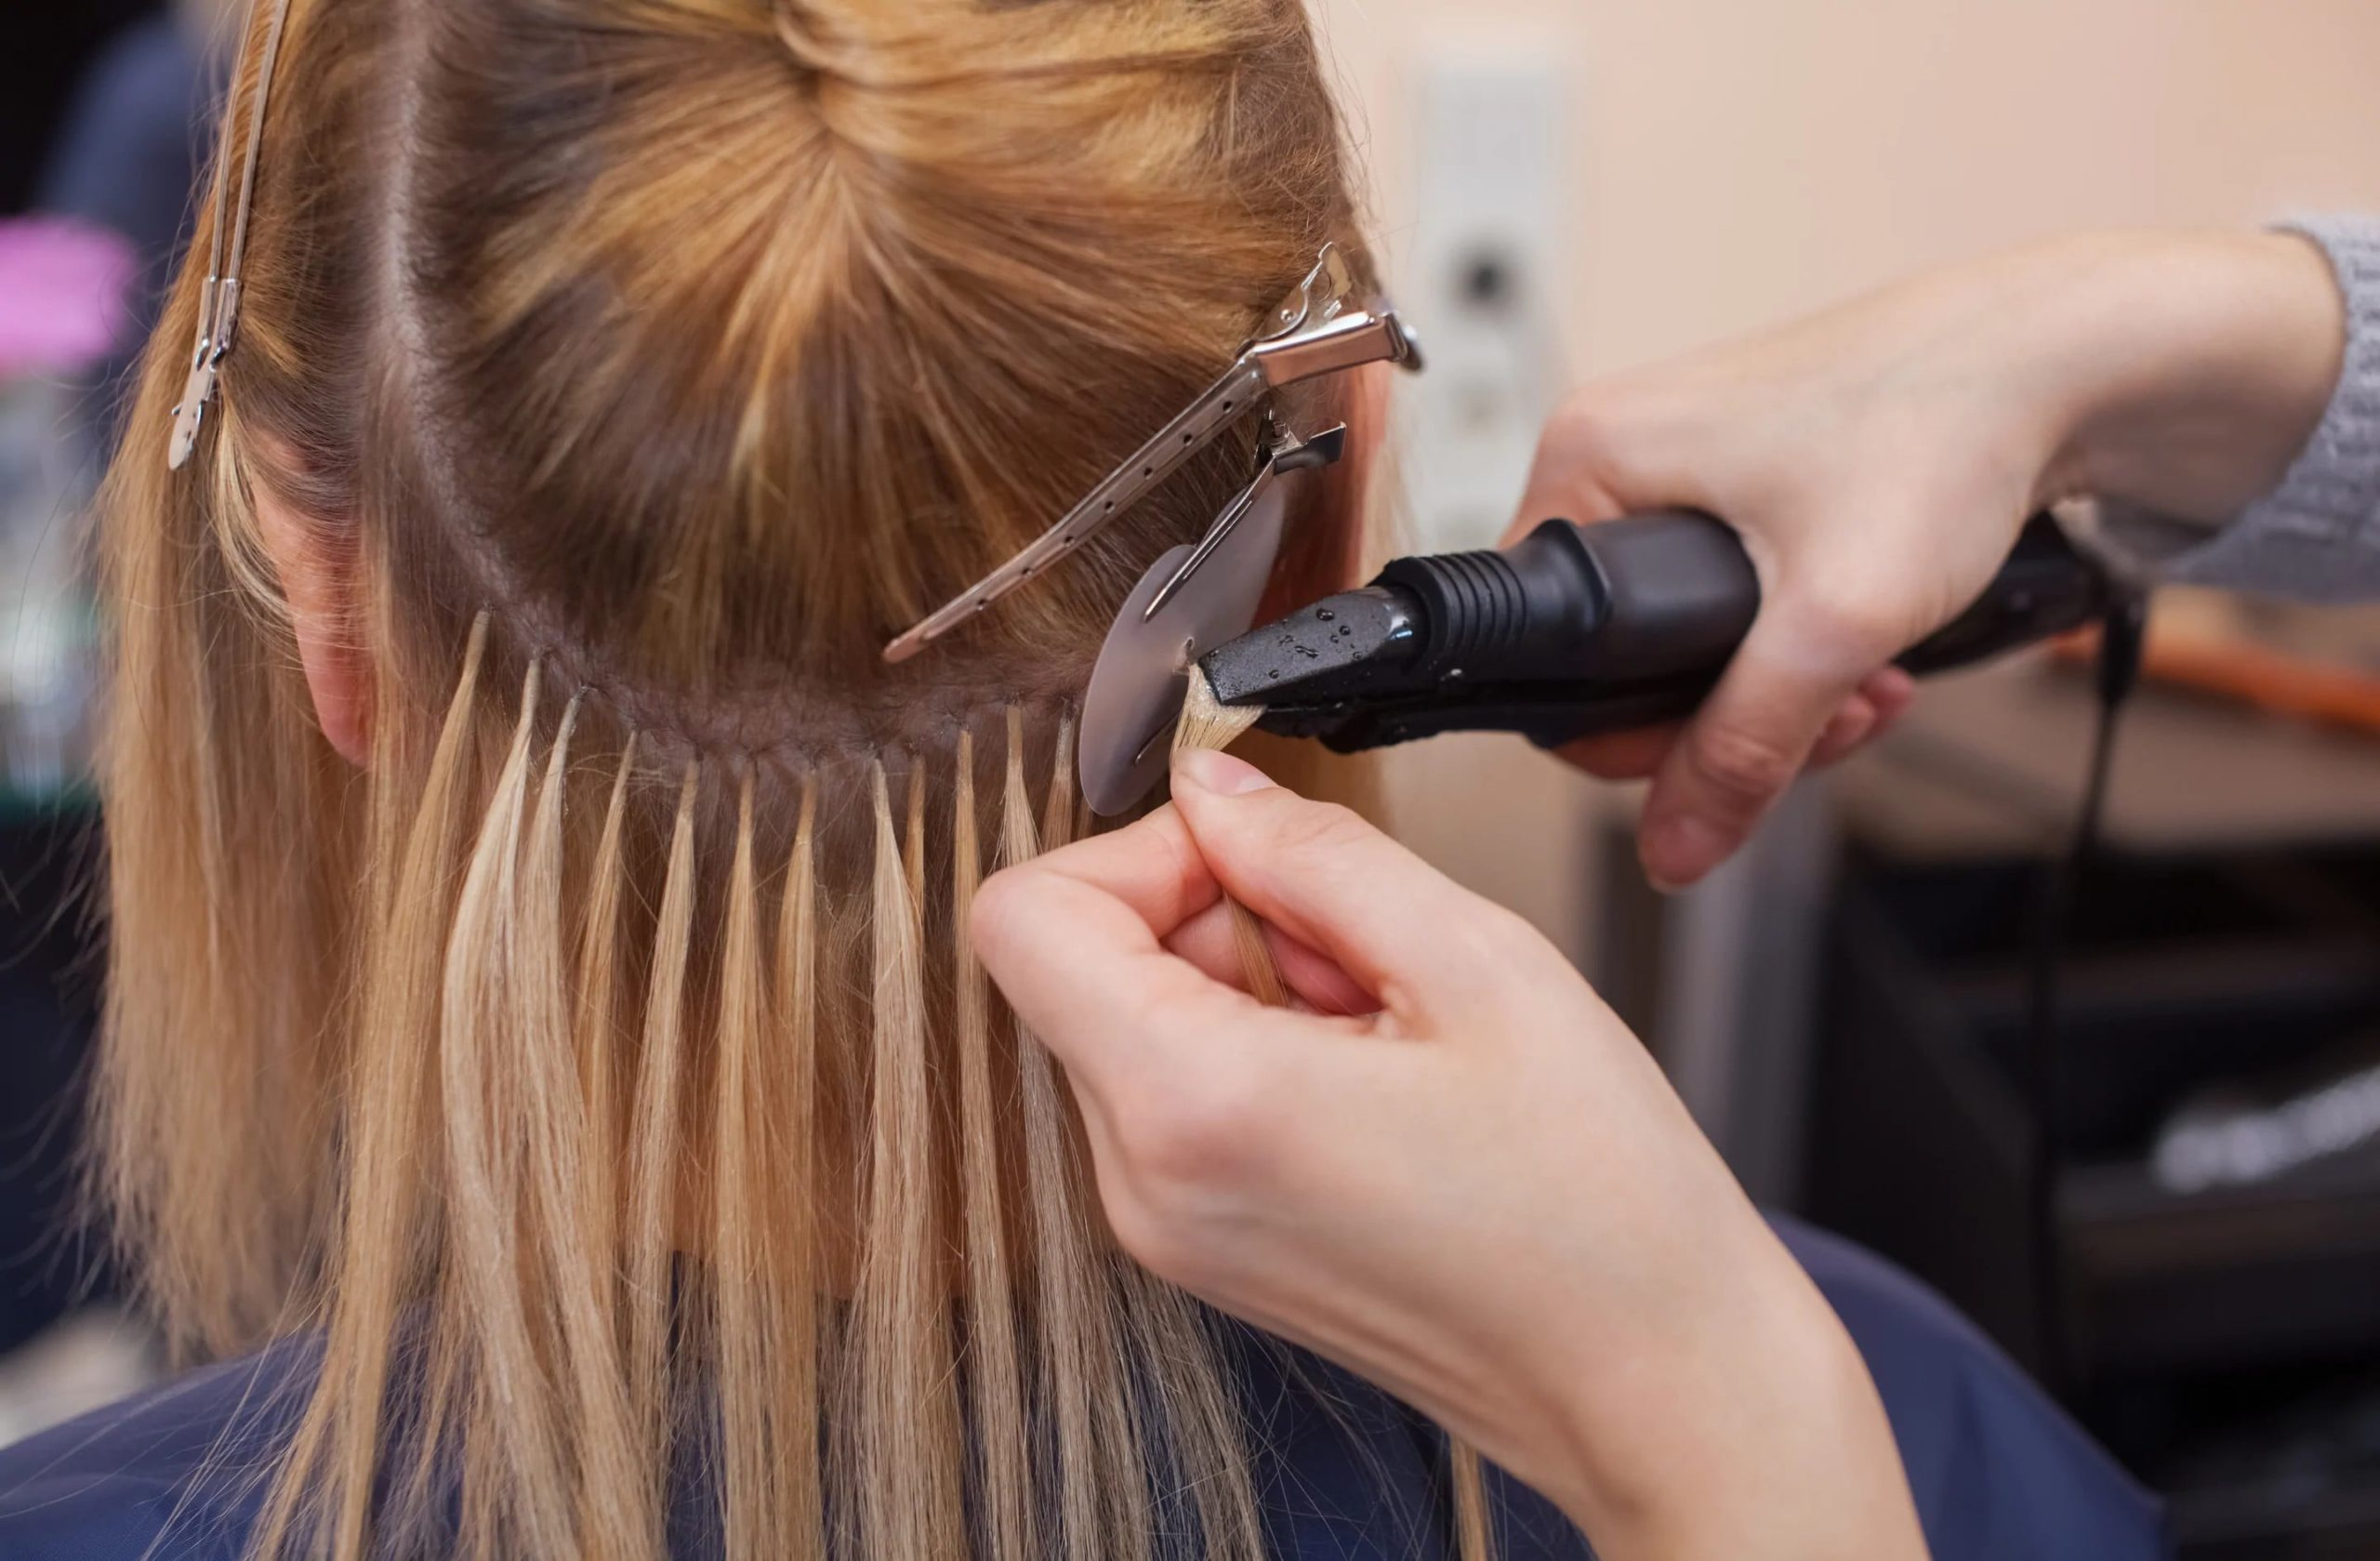 close up of a person having glue-in extensions applied.